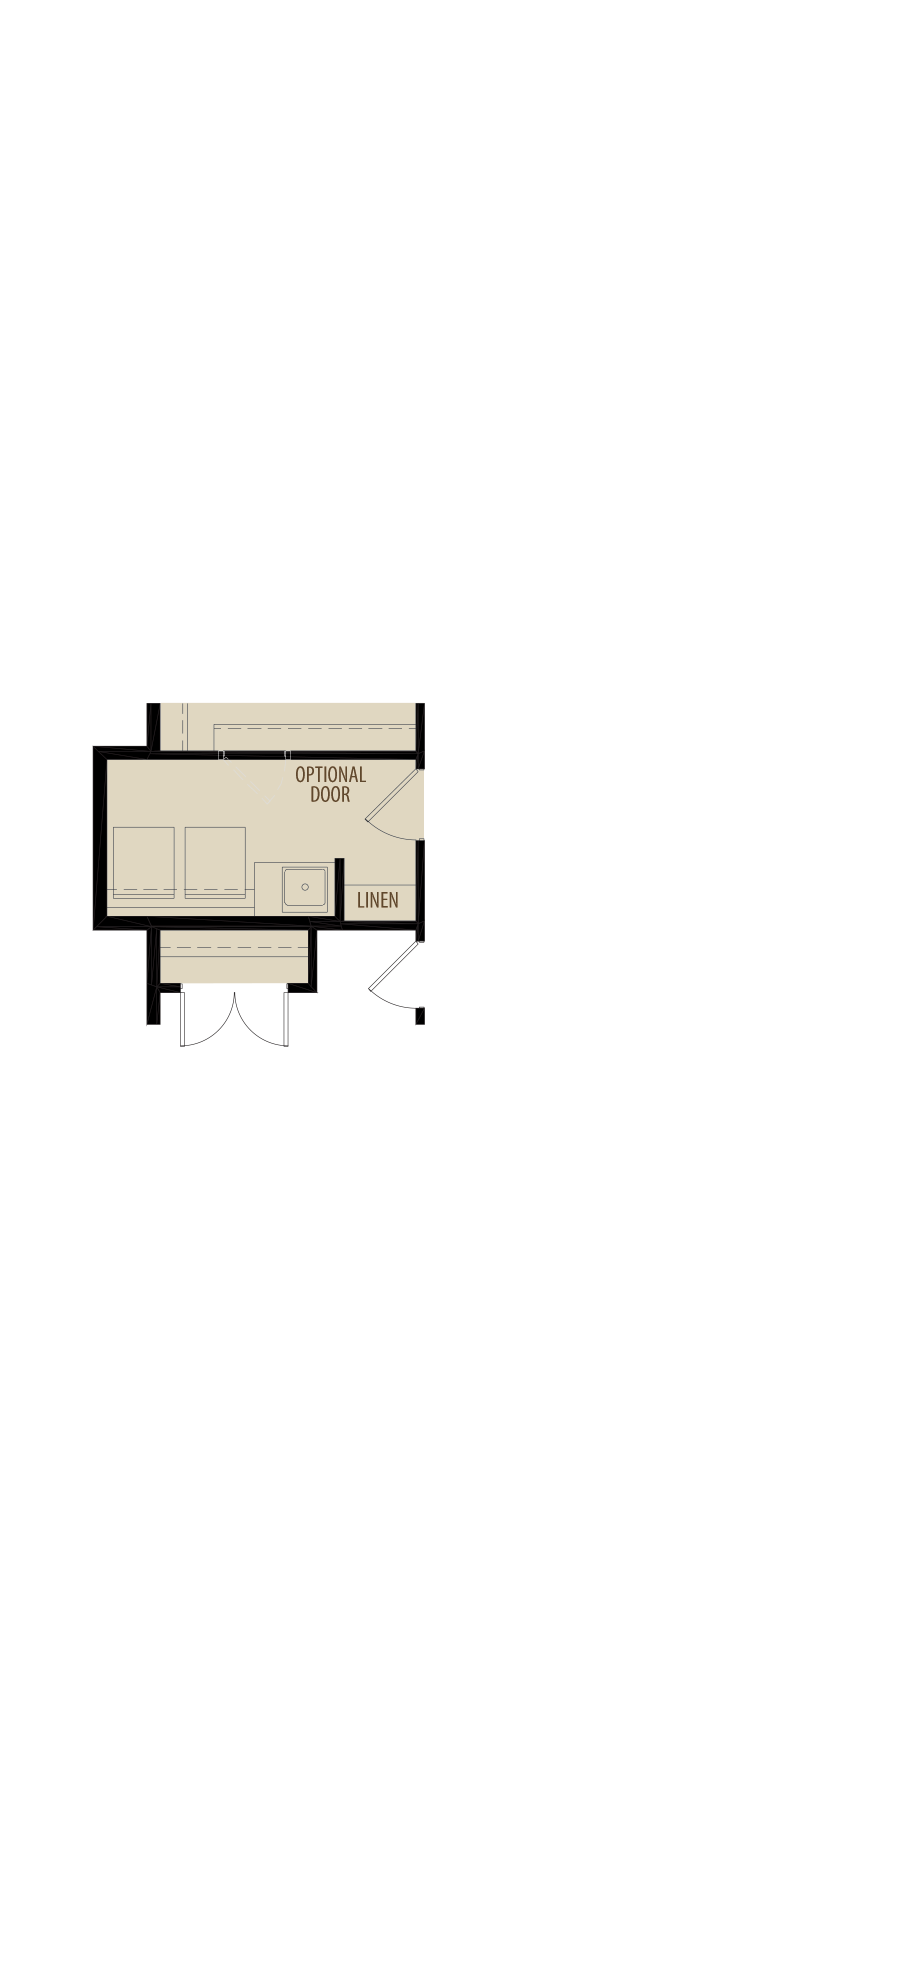 Revised Upper Floor Laundry adds 14 sq ft